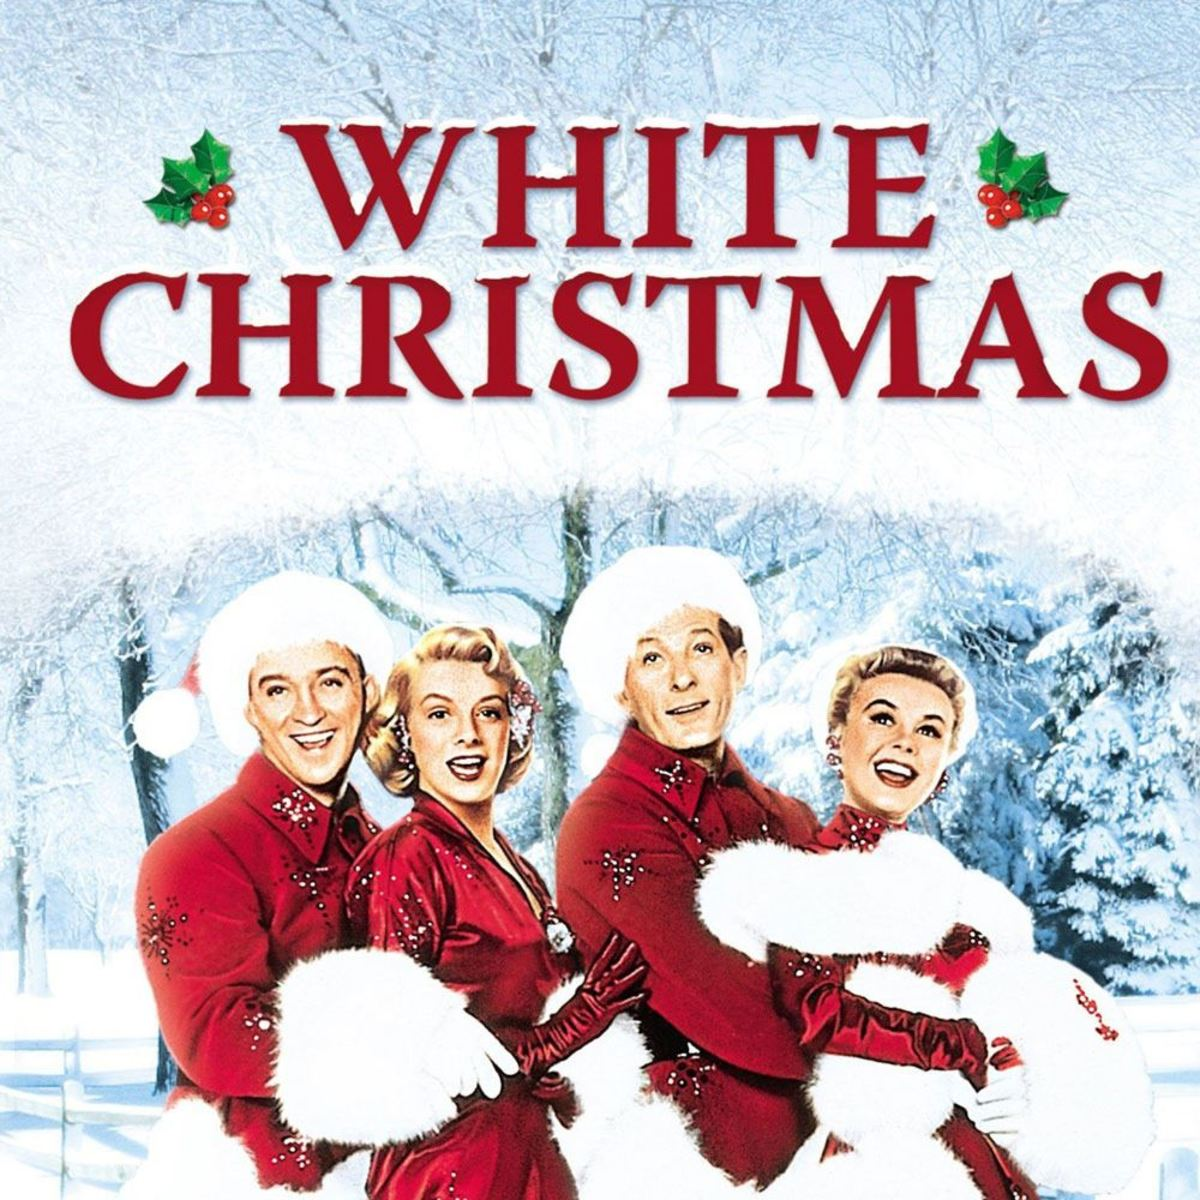 In 1954, White Christmas—a musical film starring Bing Crosby, Danny Kaye, Rosemary Clooney, and Vera-Ellen—was the highest-grossing motion picture.